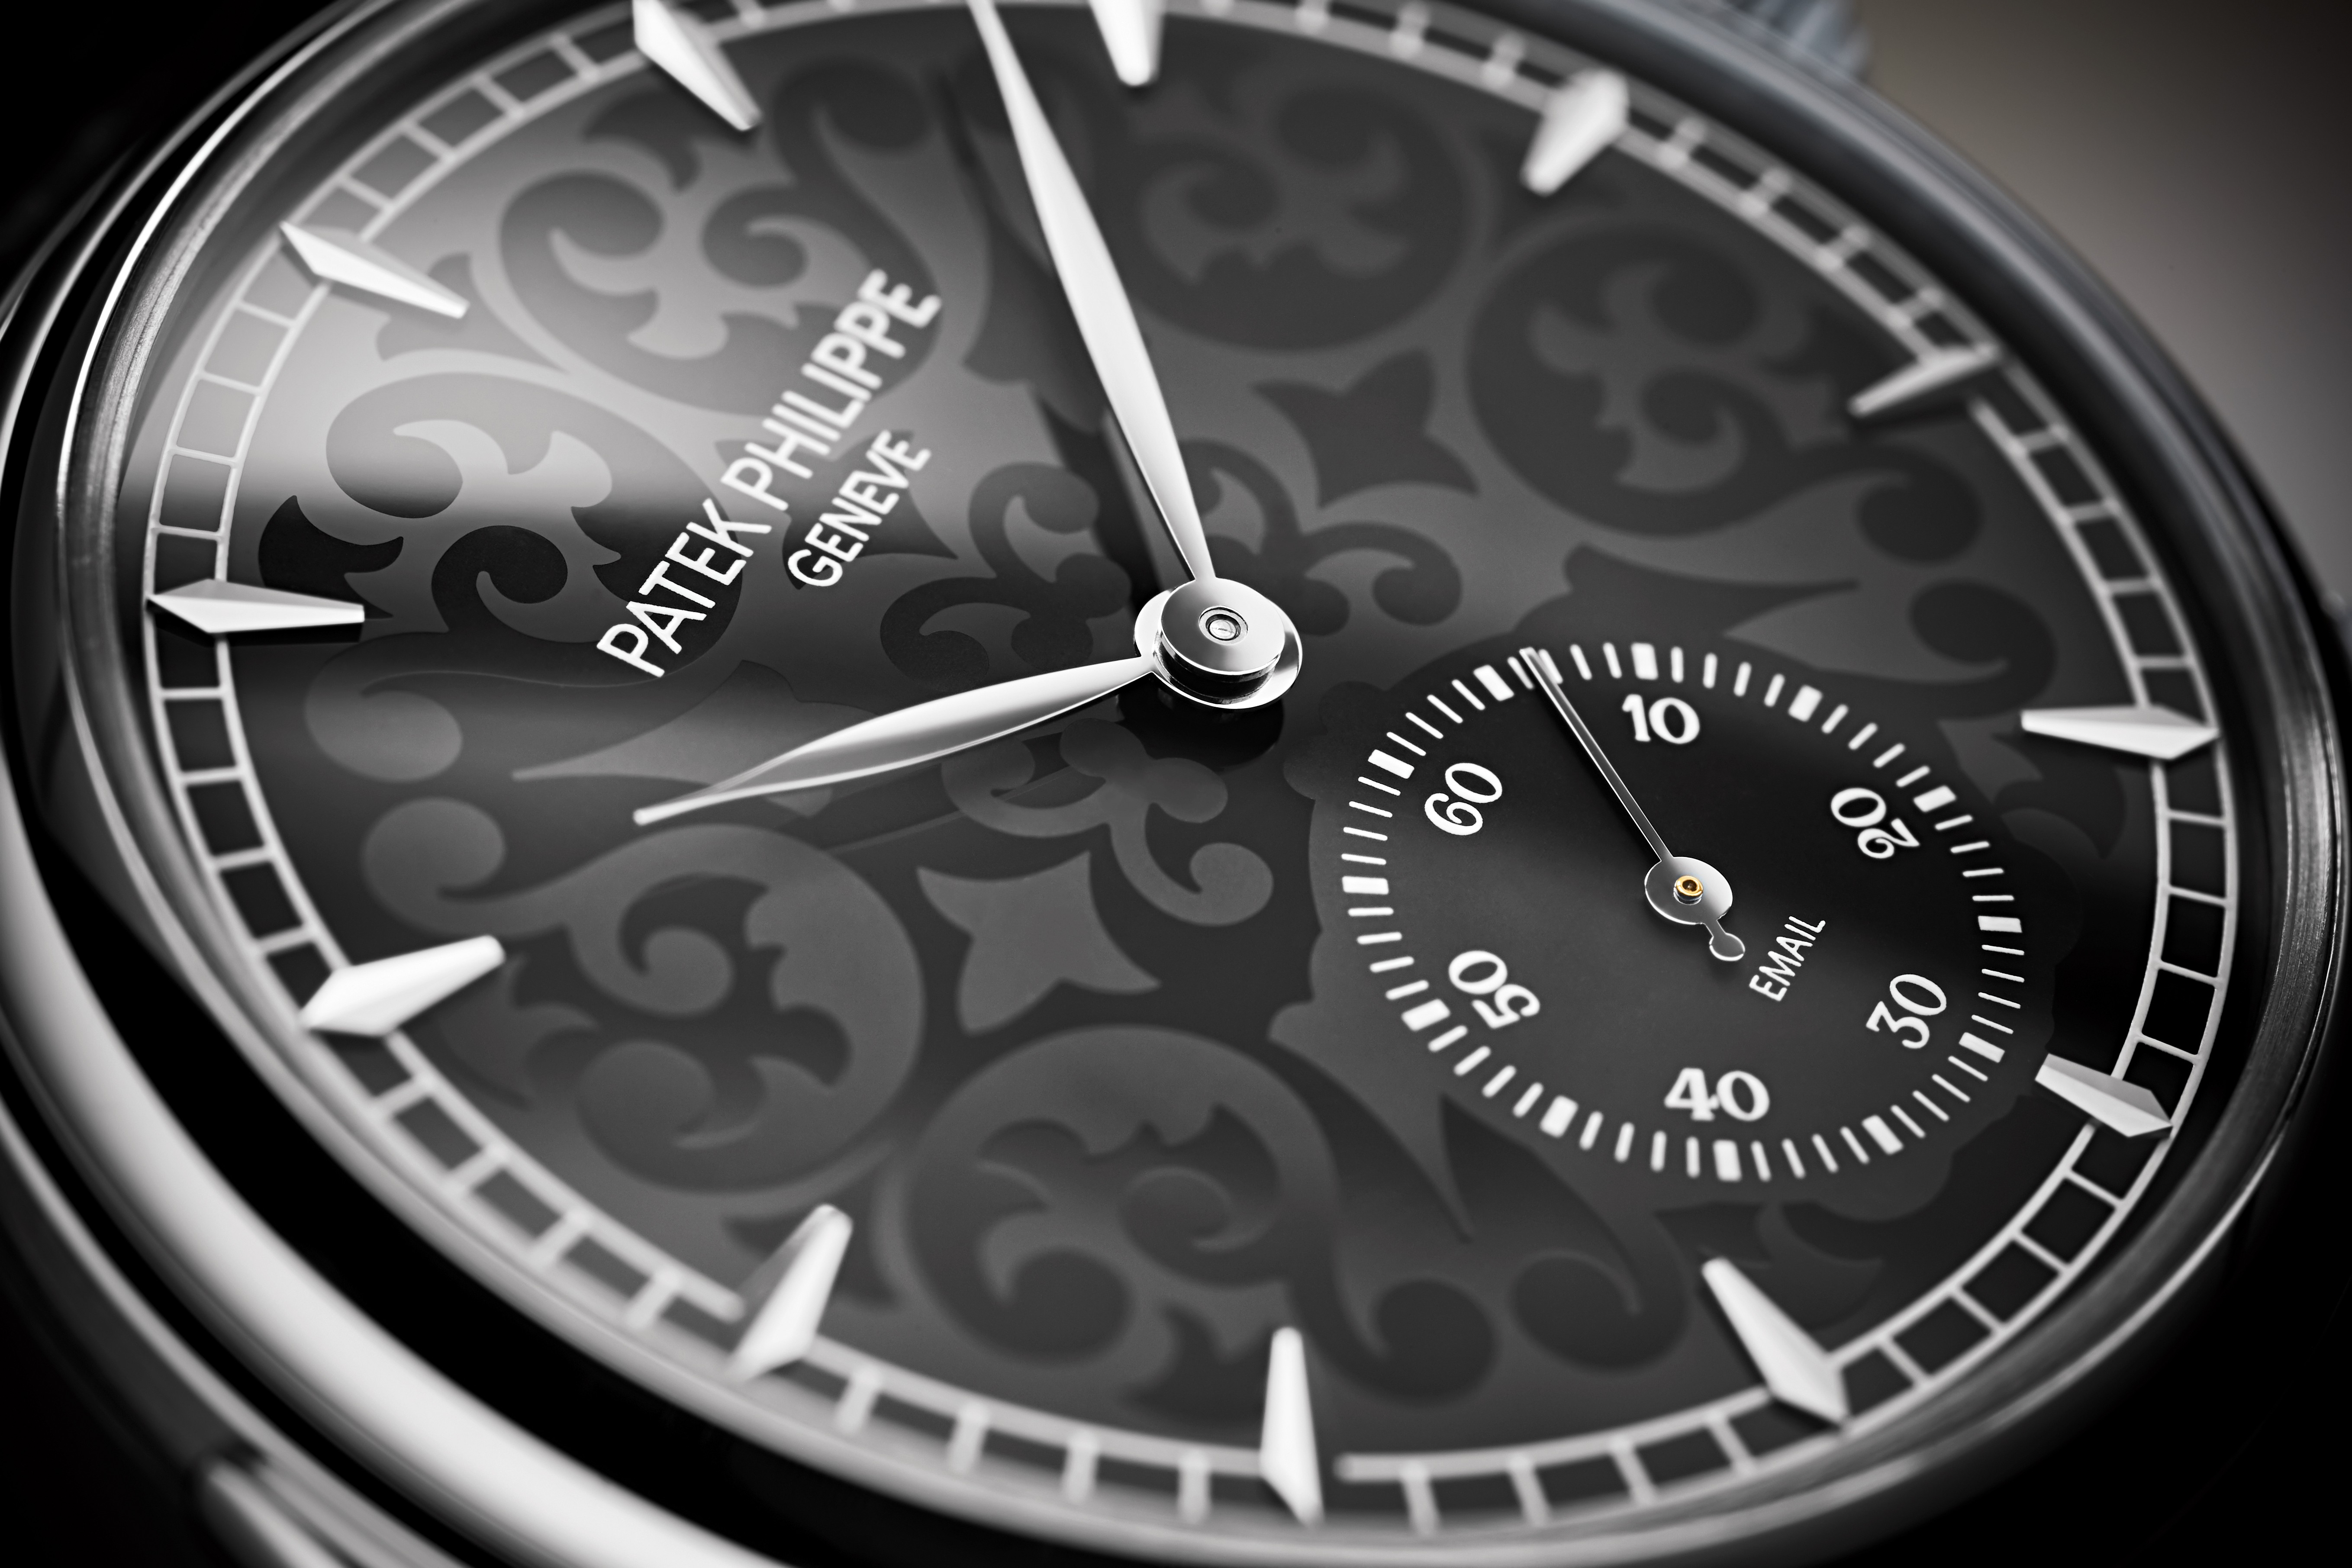 21b5288911b Patek Philippe goes bold at Baselworld 2019 with 15 new designs ...